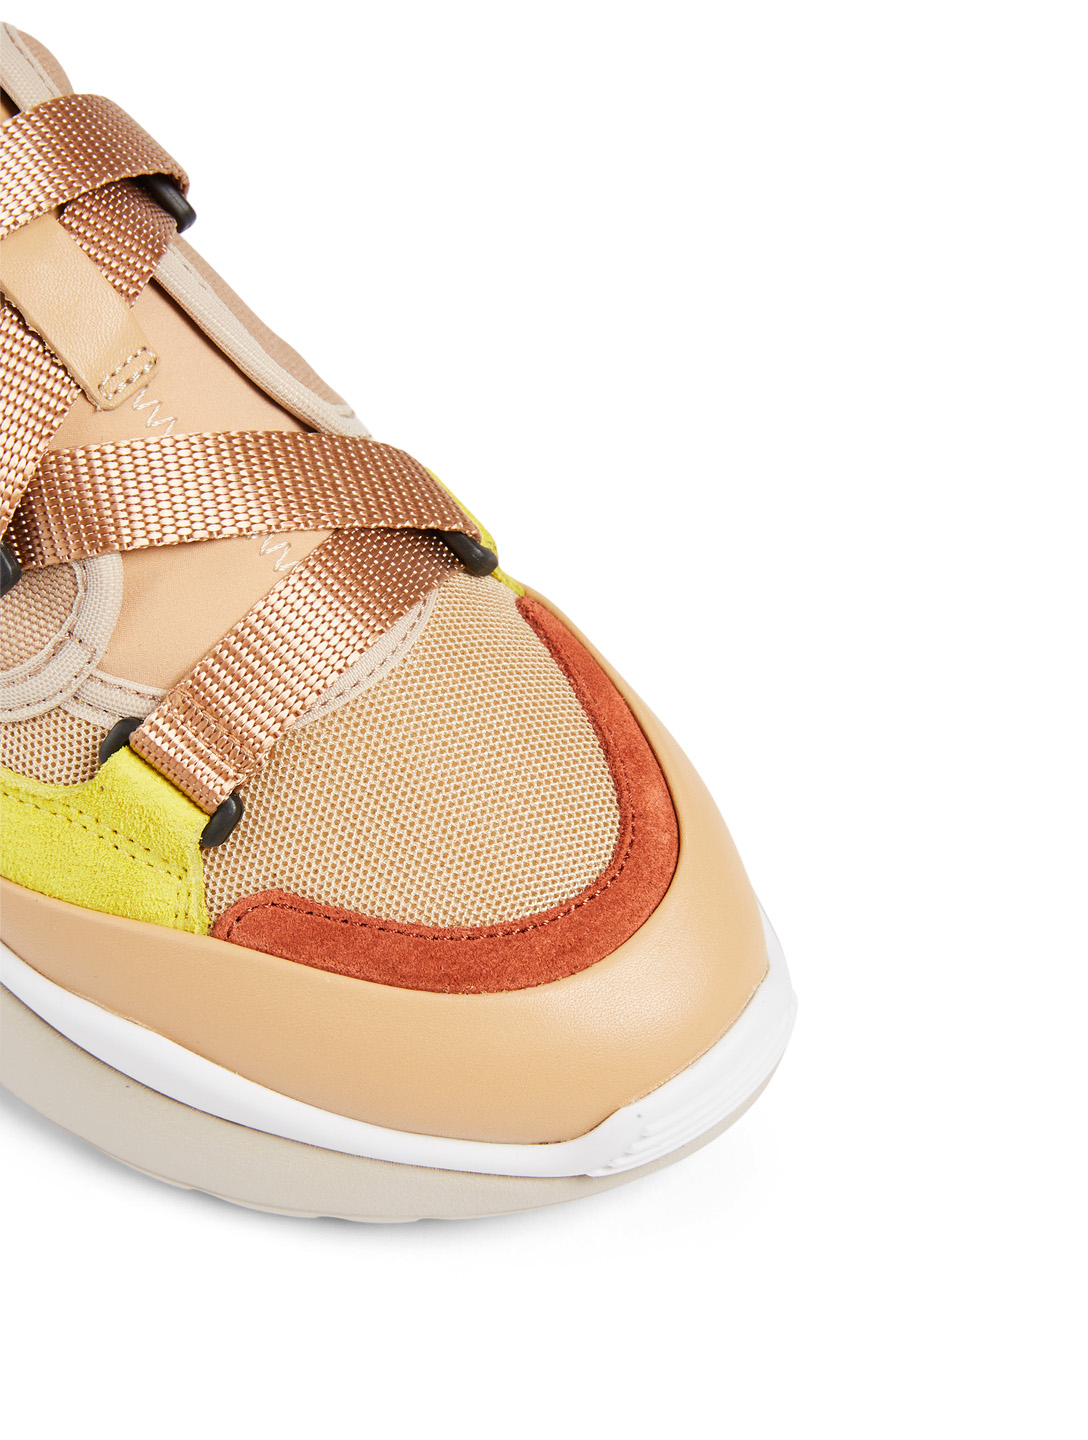 CHLOÉ Sonnie Suede And Canvas Sneakers Women's Pink